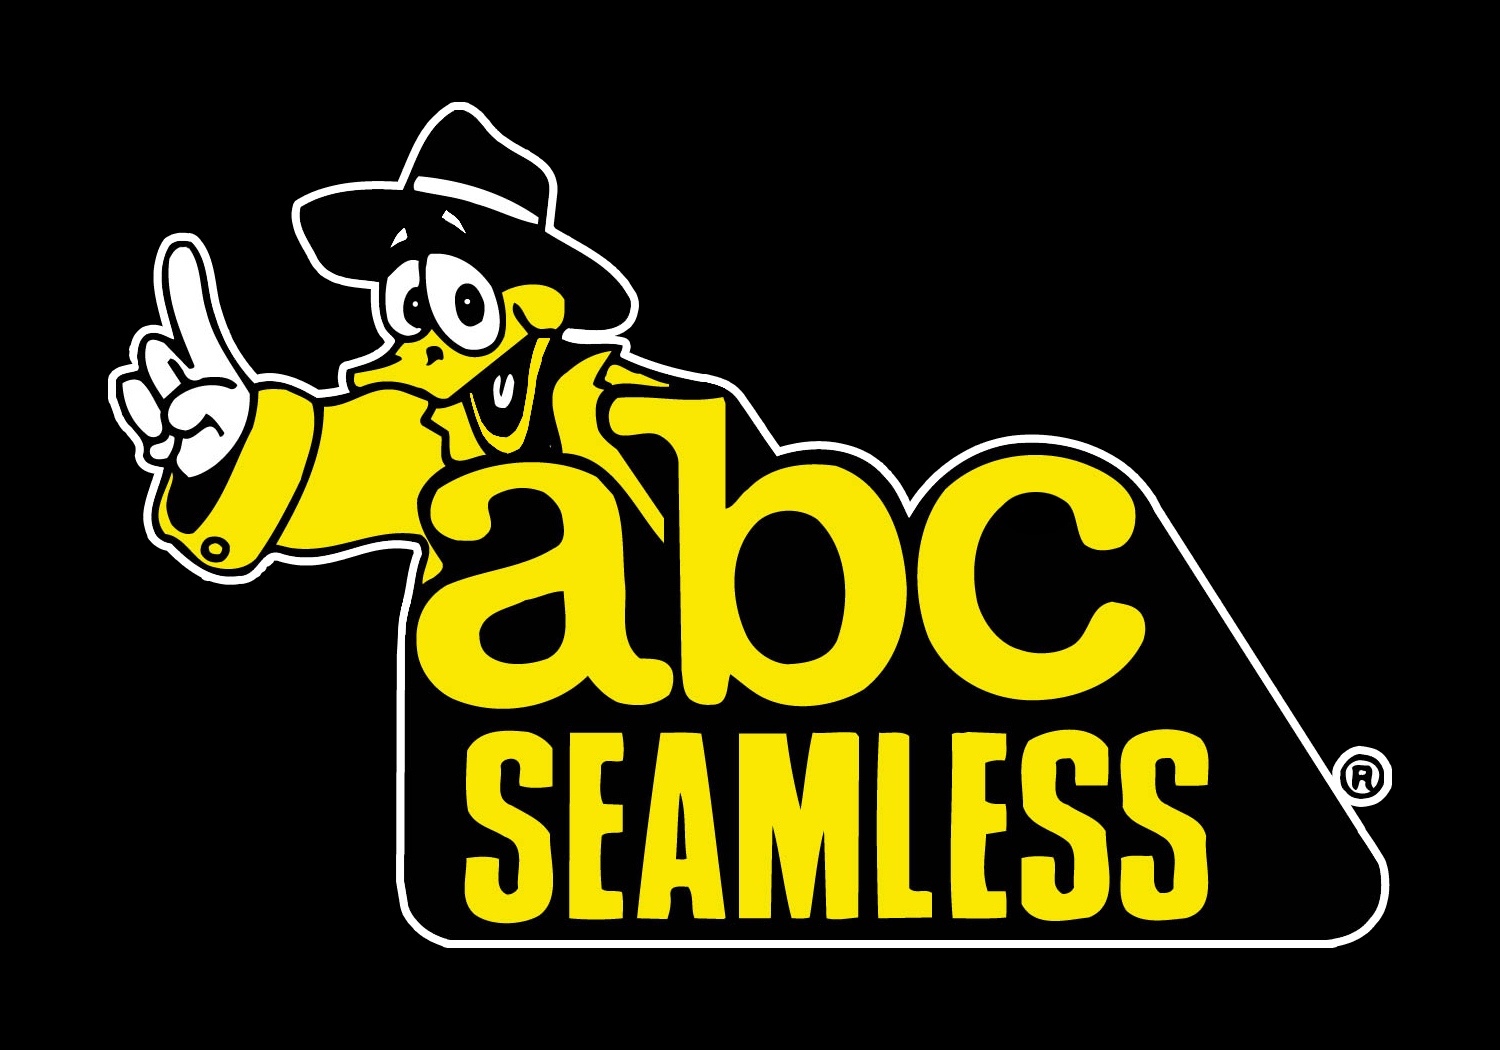 ABC-Seamless-LOGO__Blk-Back.jpg